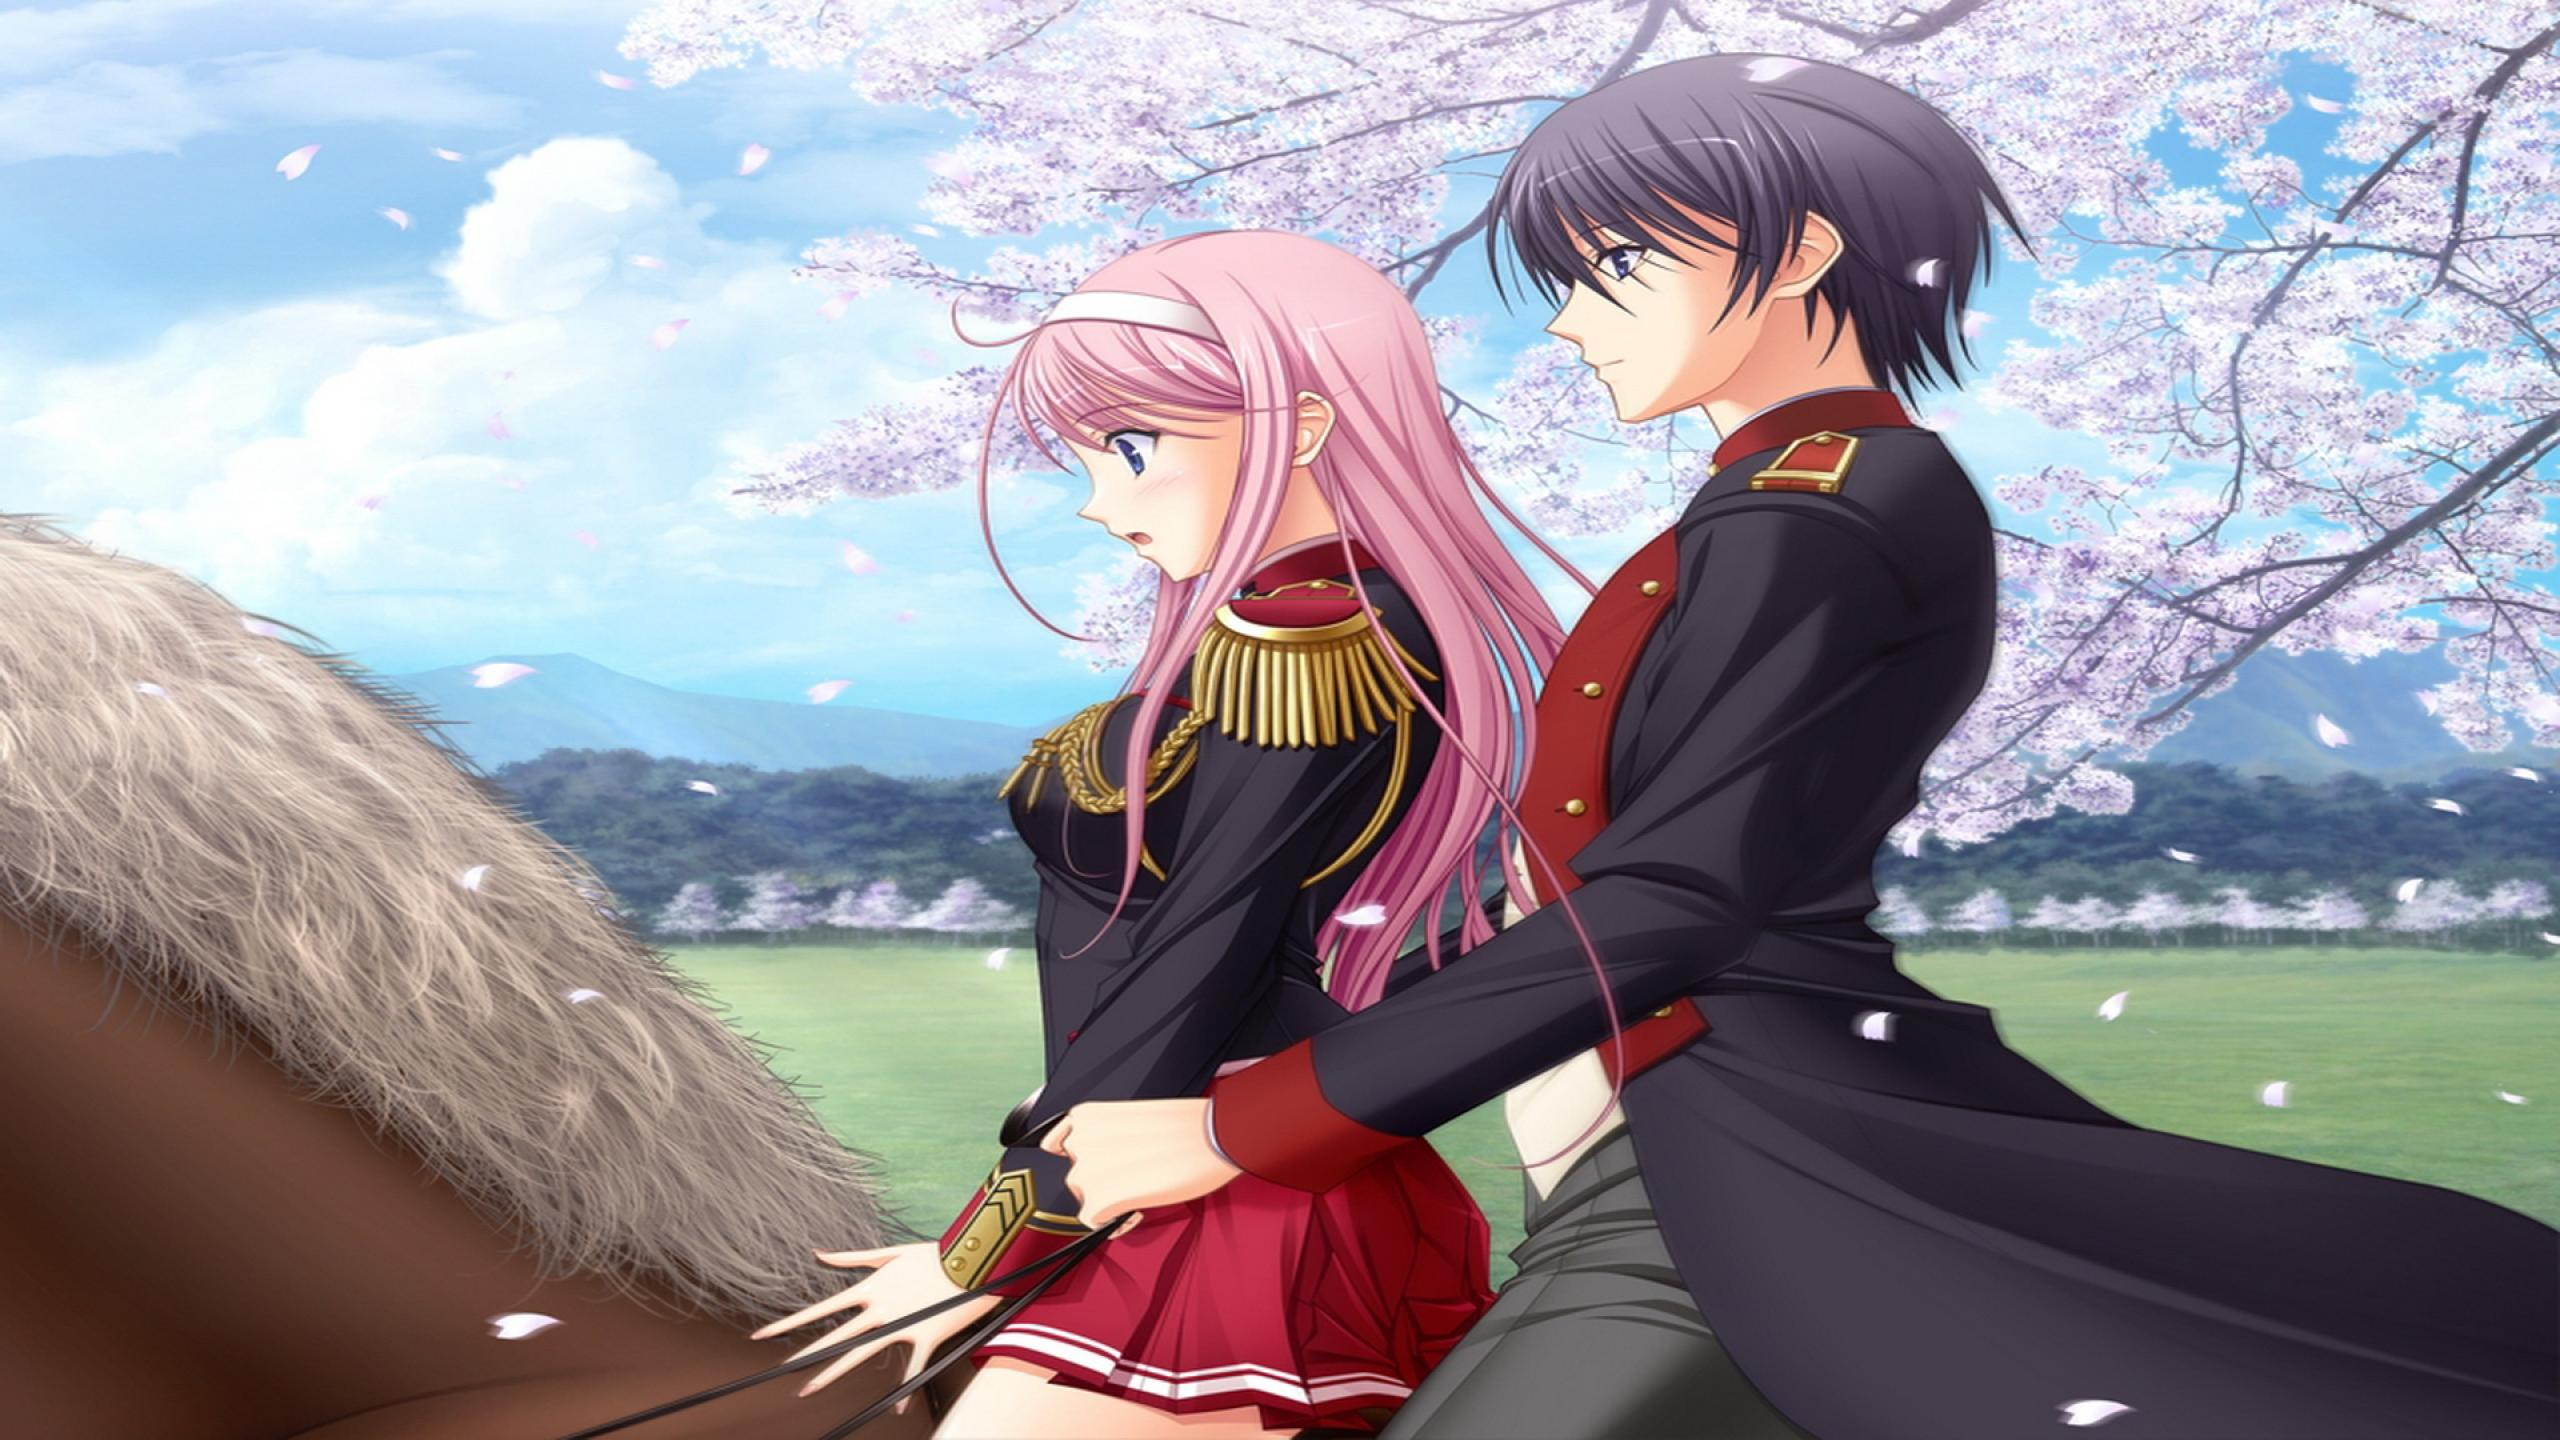 Love Anime HD Wallpapers 2560x1440 Anime Wallpapers 2560x1440 Download 2560x1440